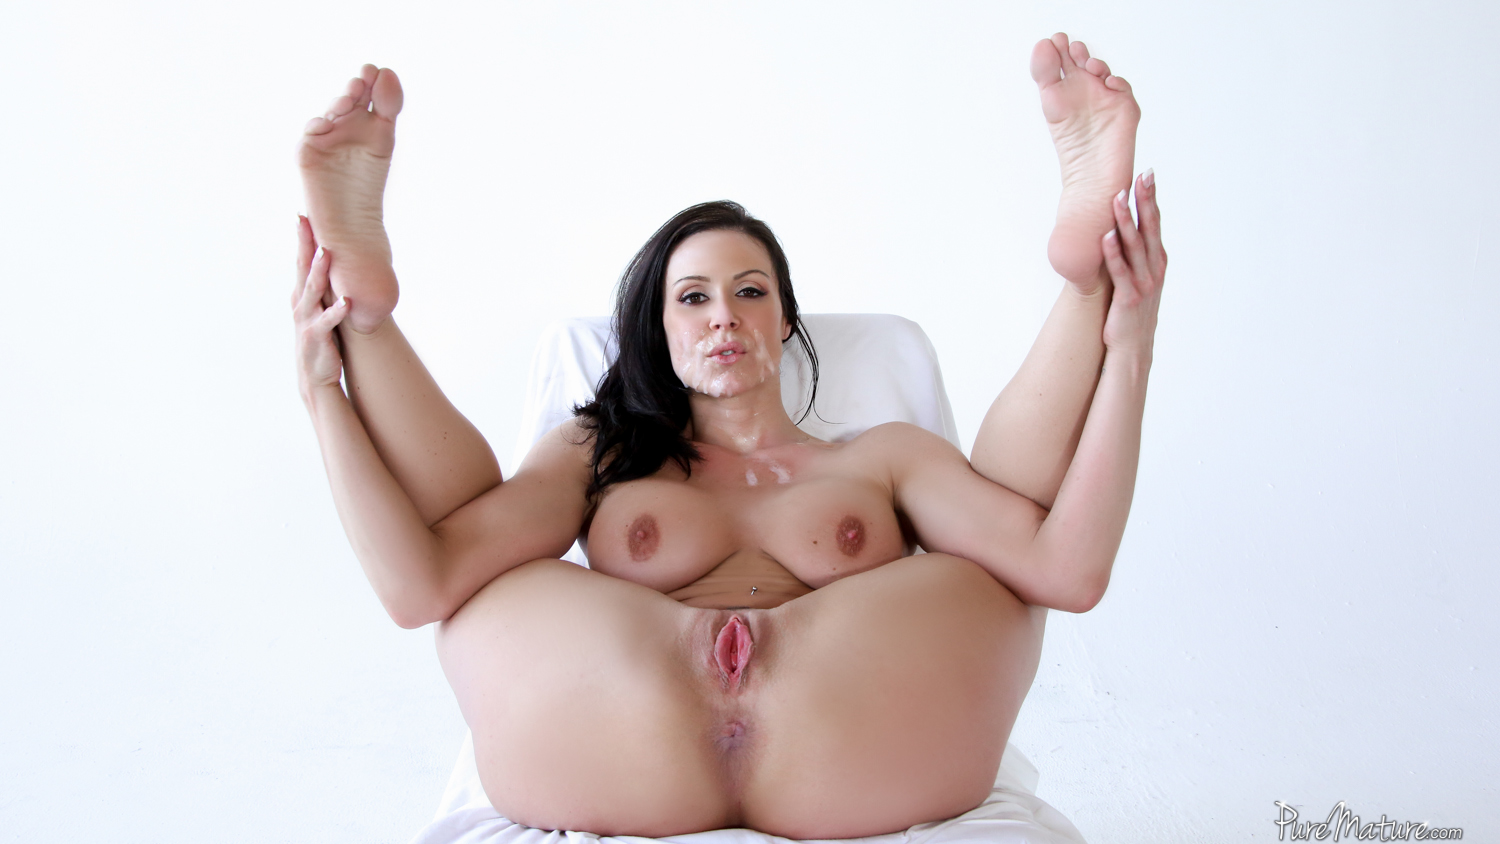 Kendra lust is a big ass milf who loves big dick 5